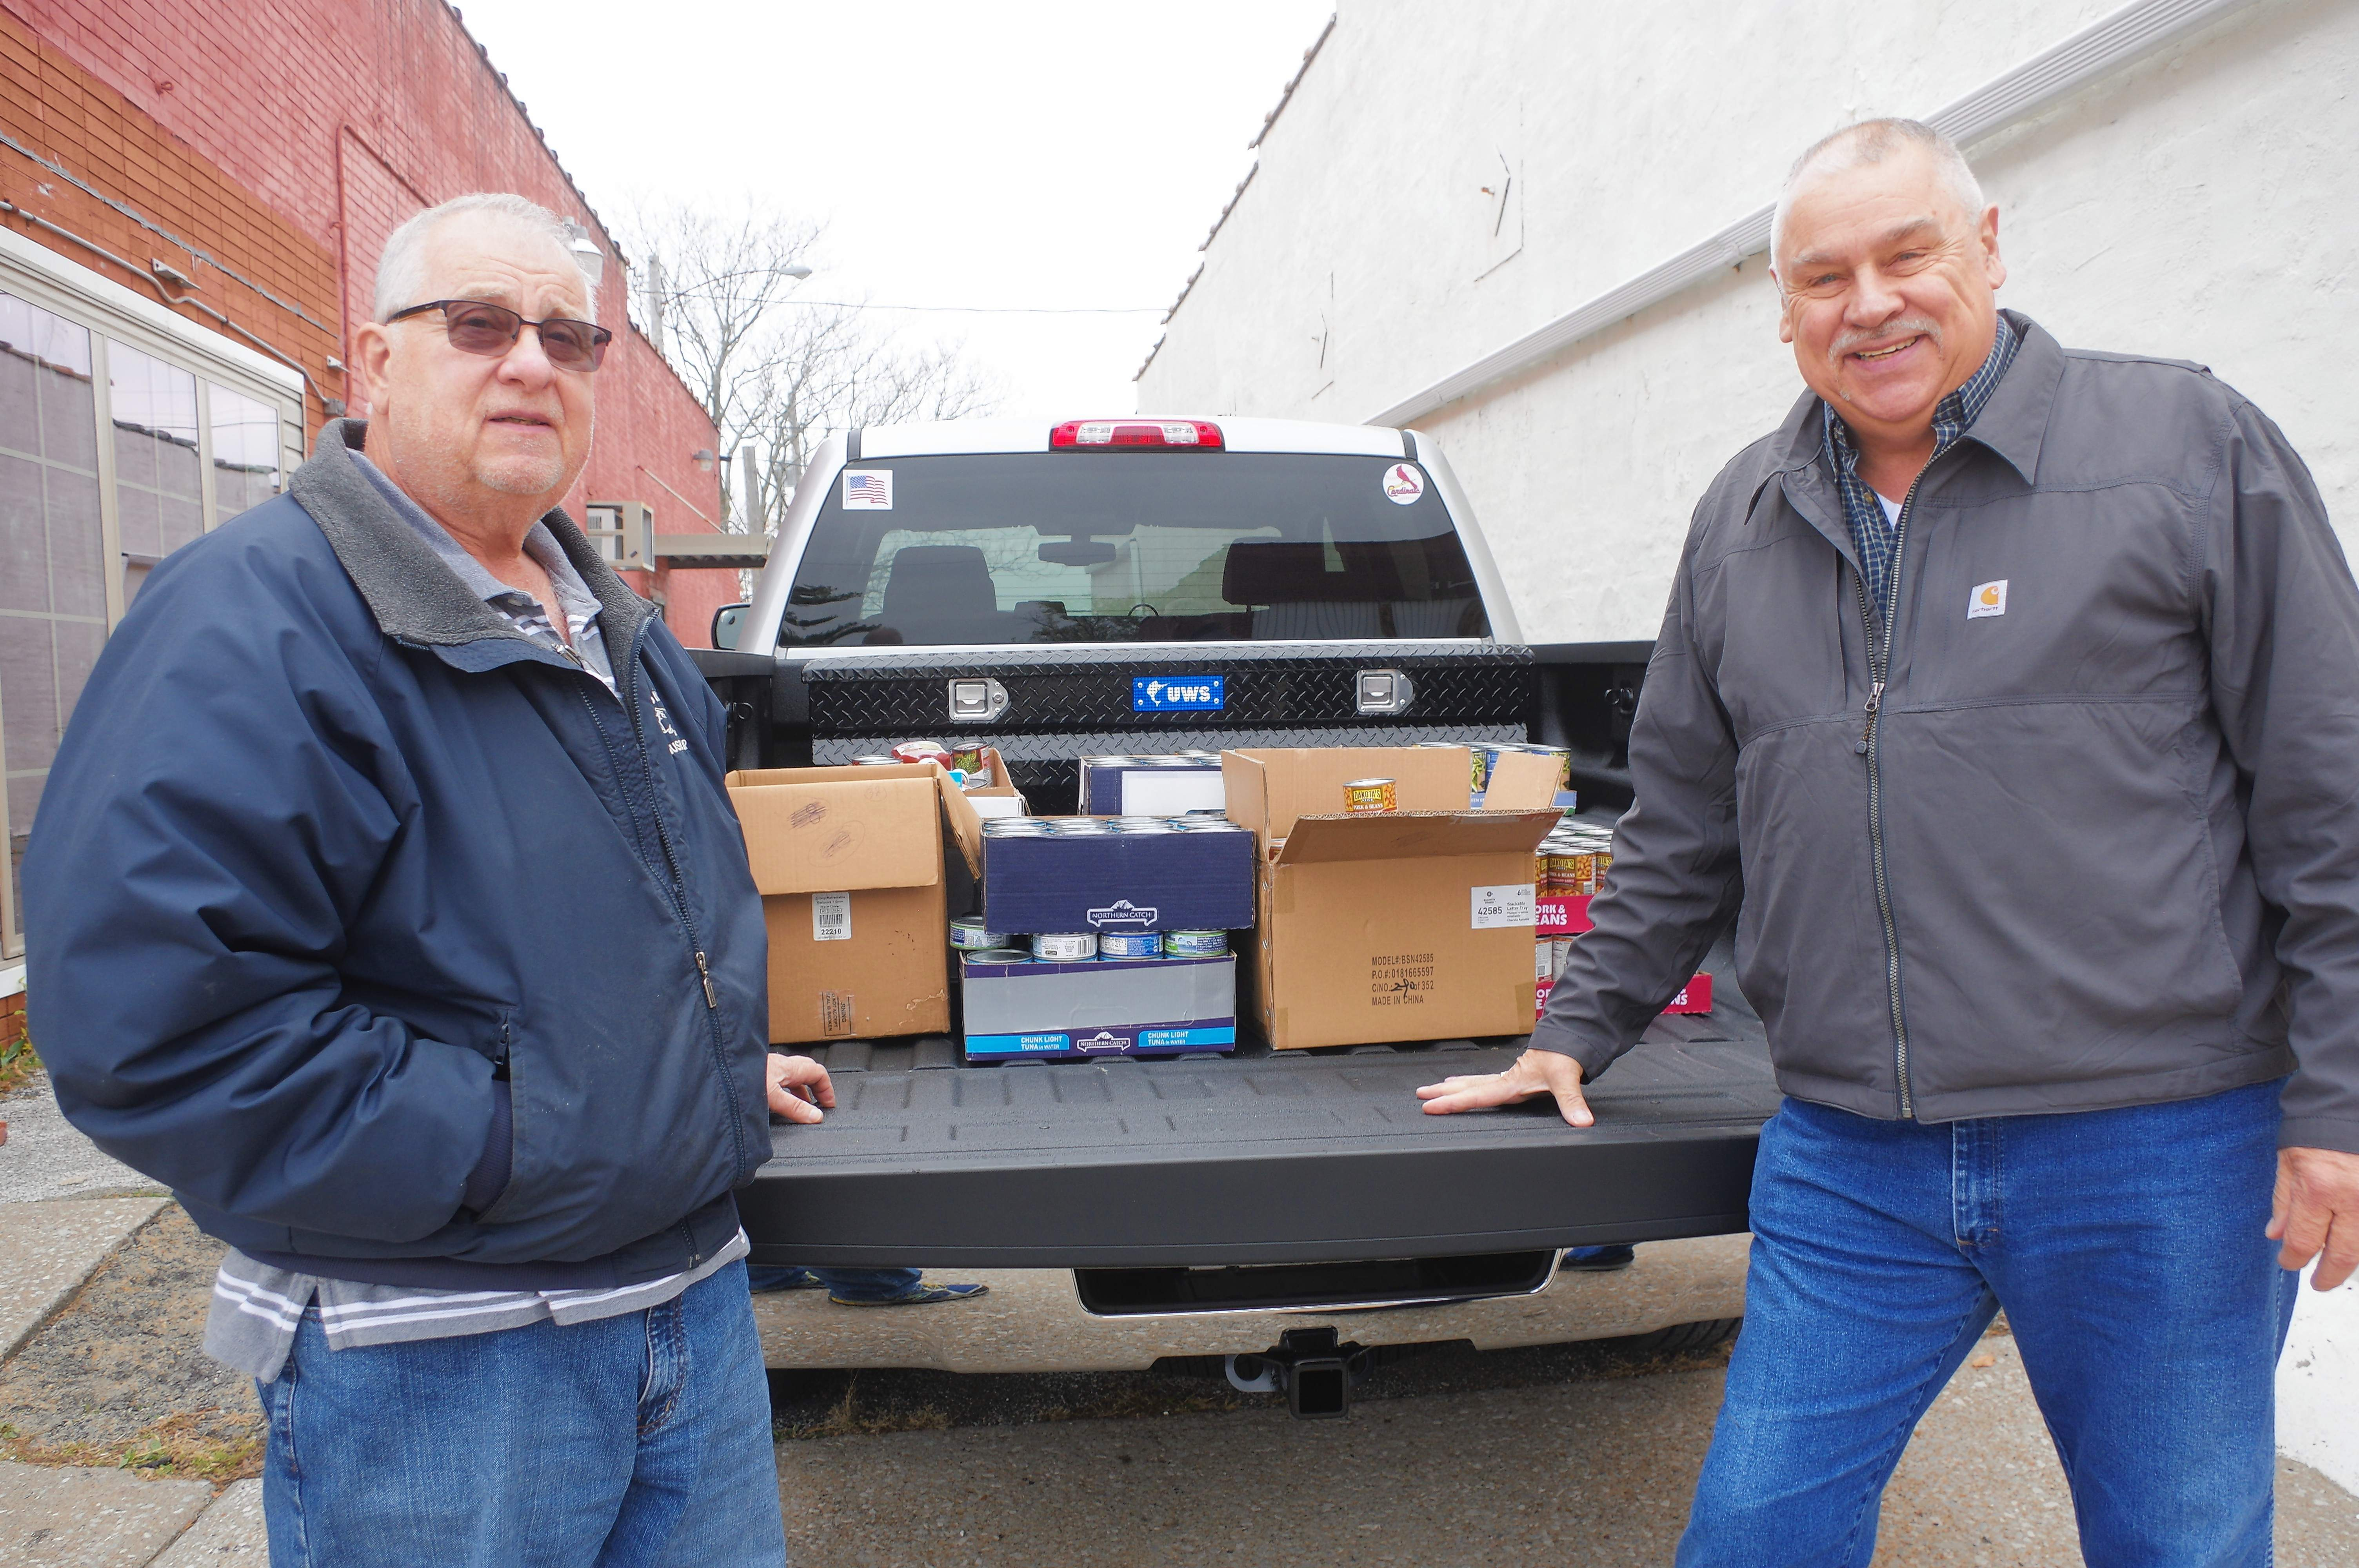 Jim Buch, right, and Larry Brown, of the AFSCME Retirees Sub-Chapter 56, load Buch's truck with 800 cans of food, which were delivered to the Baldwin Lutheran Church Food Pantry.